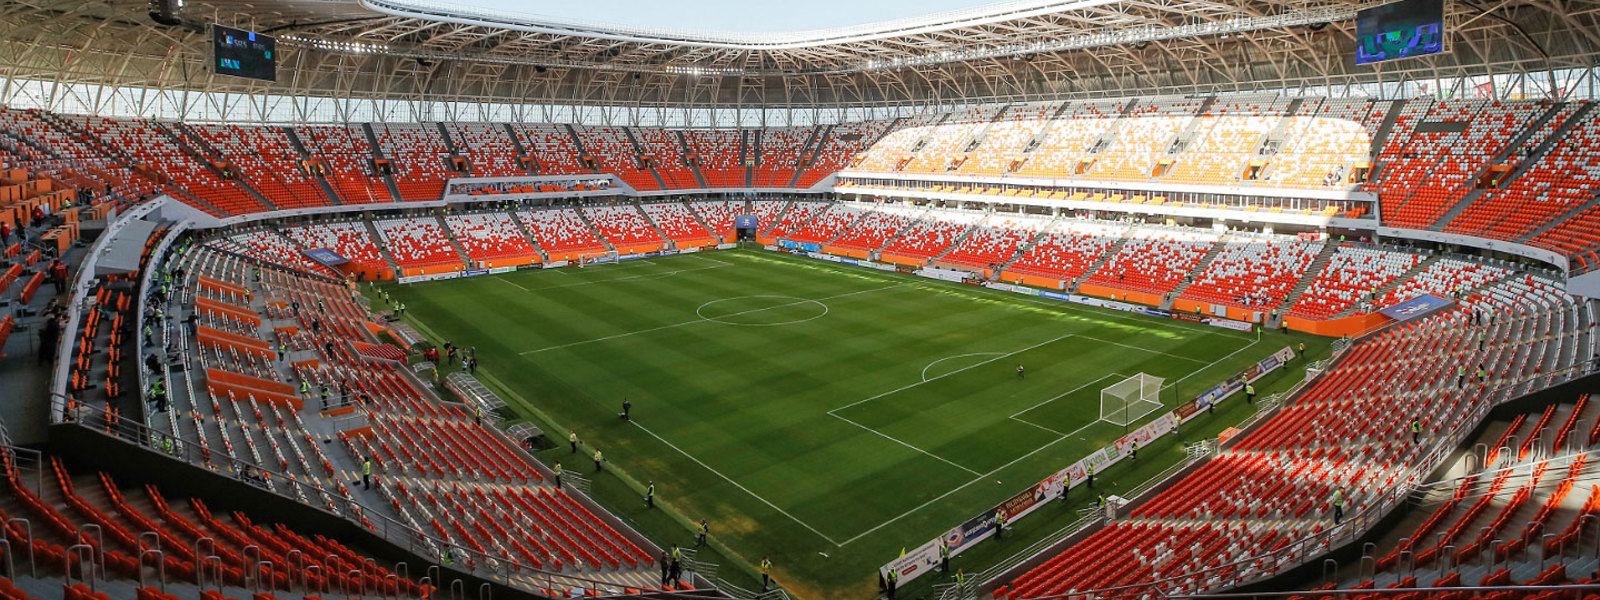 Very big mordovia arena